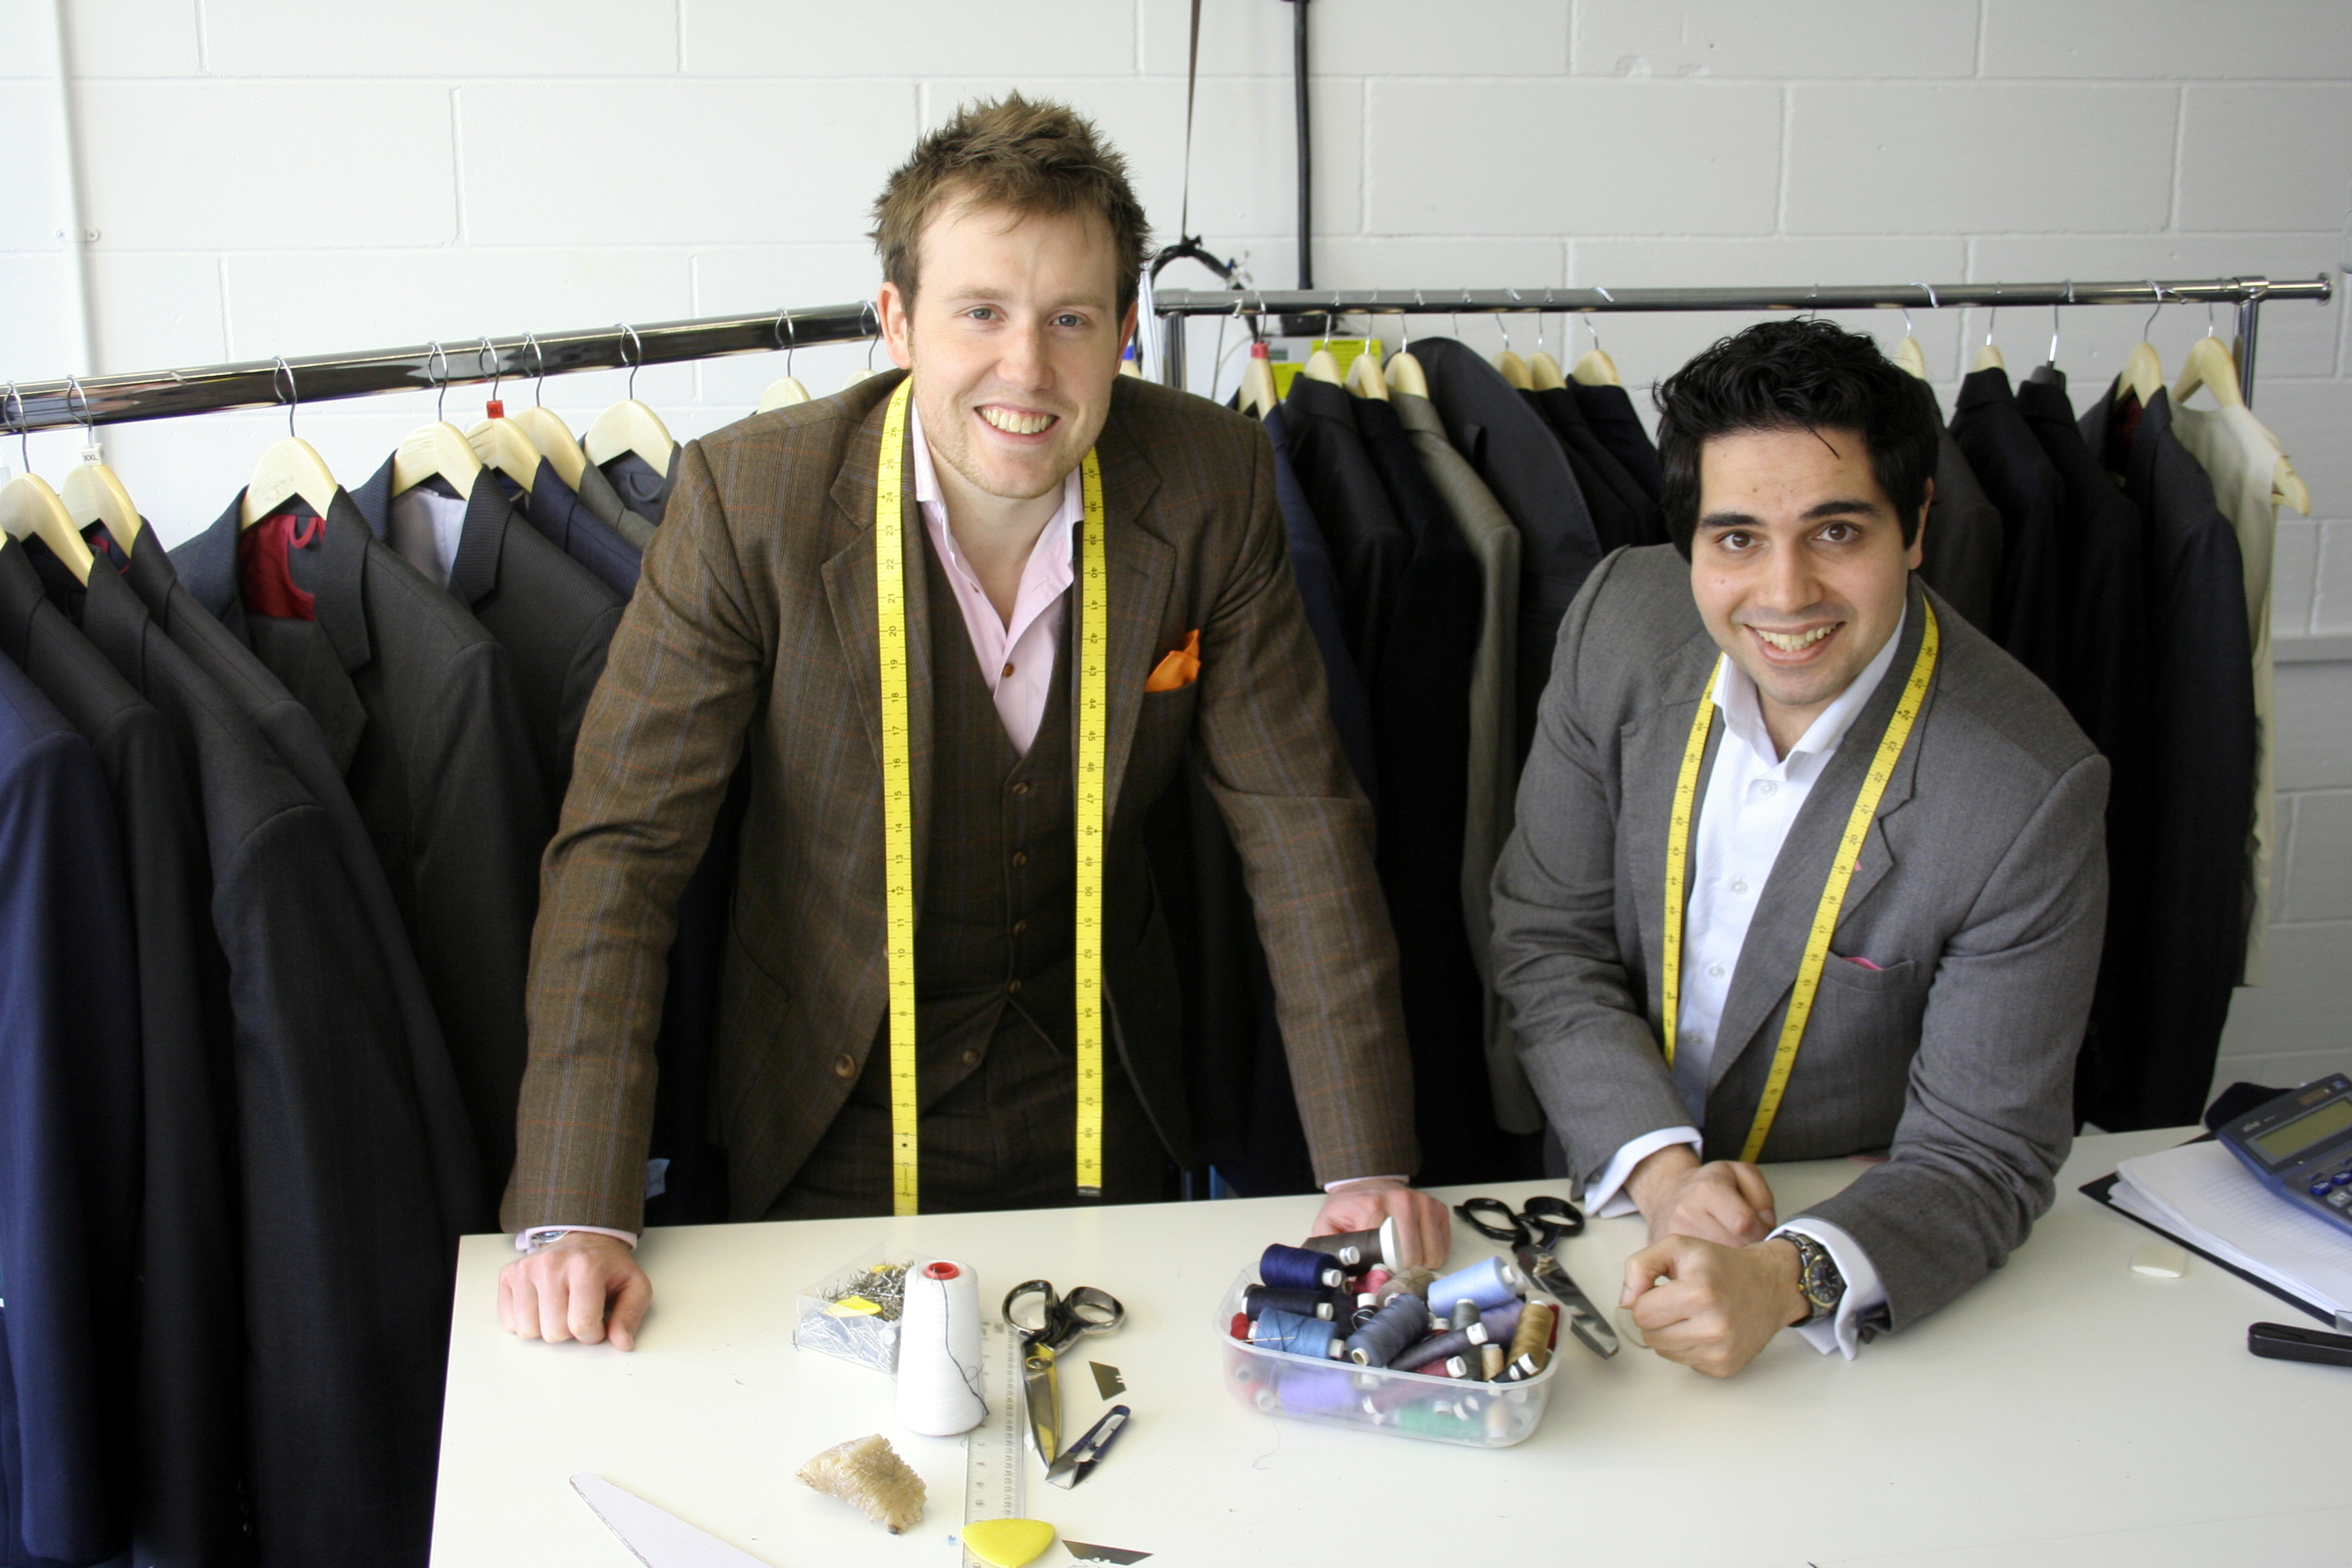 A Suit That Fits  co-founders, Warren Bennett and David Hathiramani